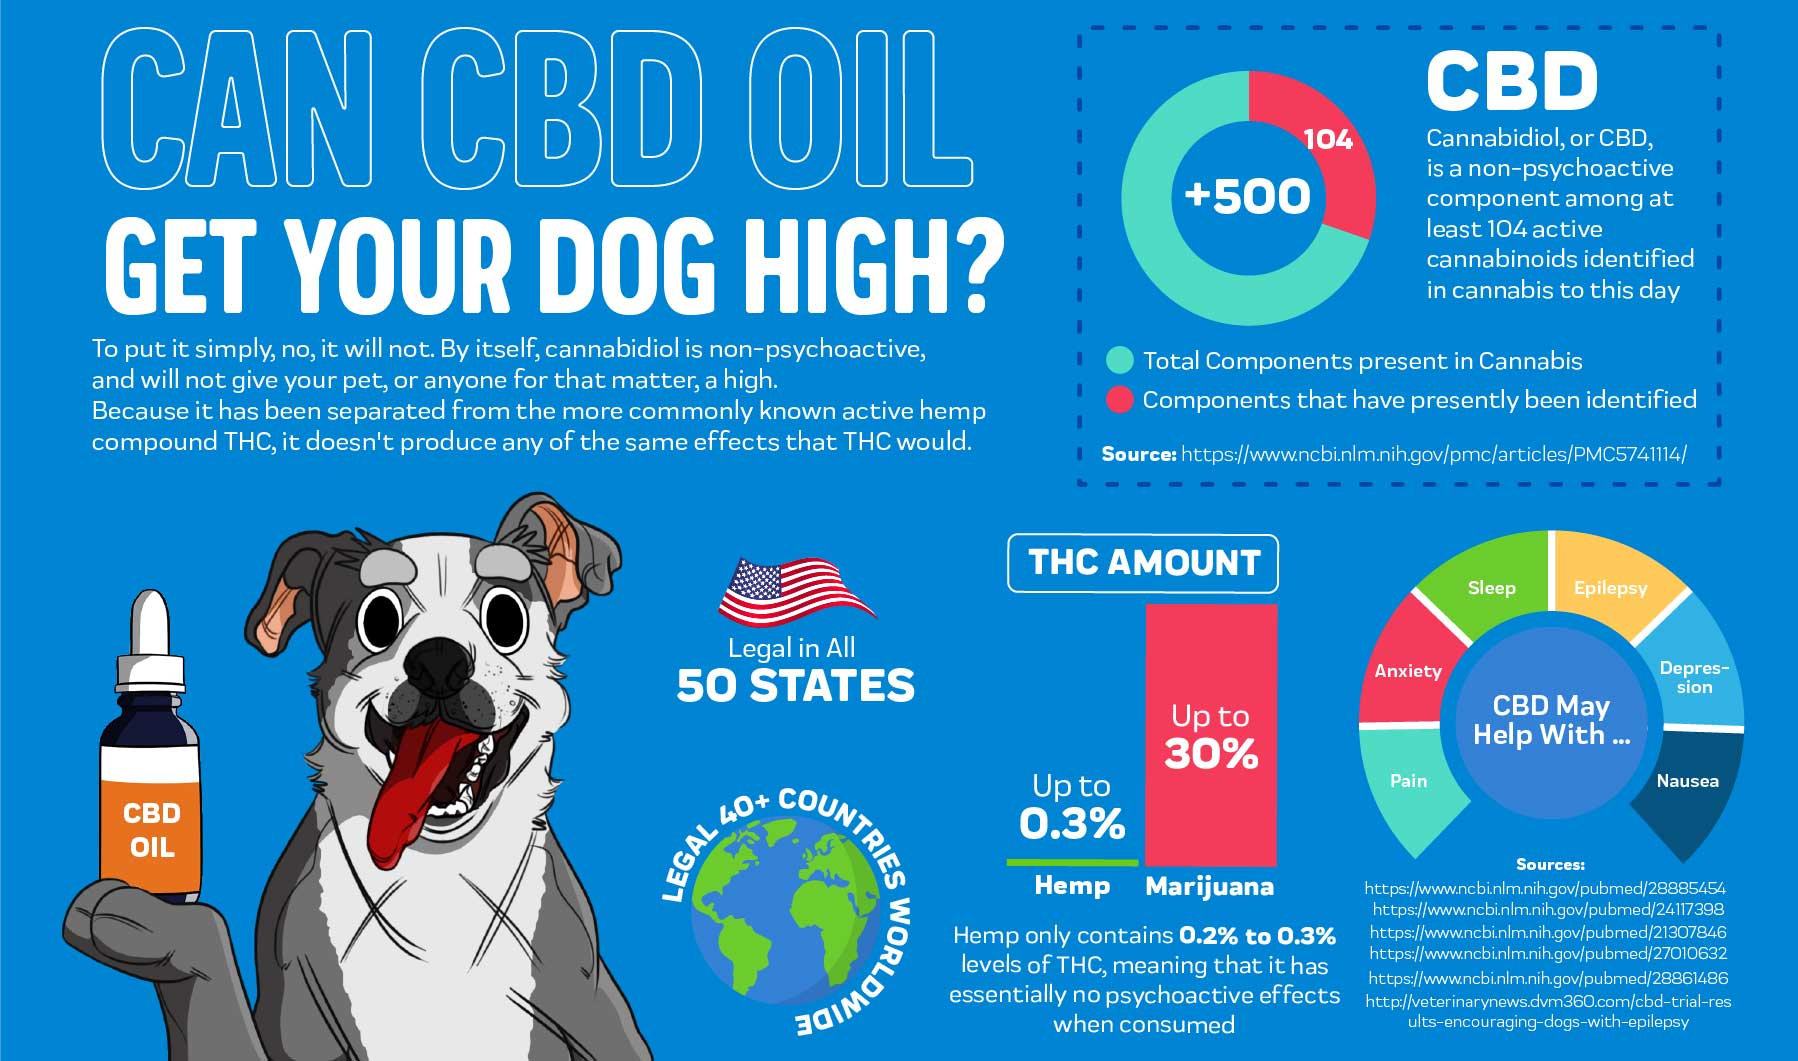 Can CBD Oil Get your Dog High